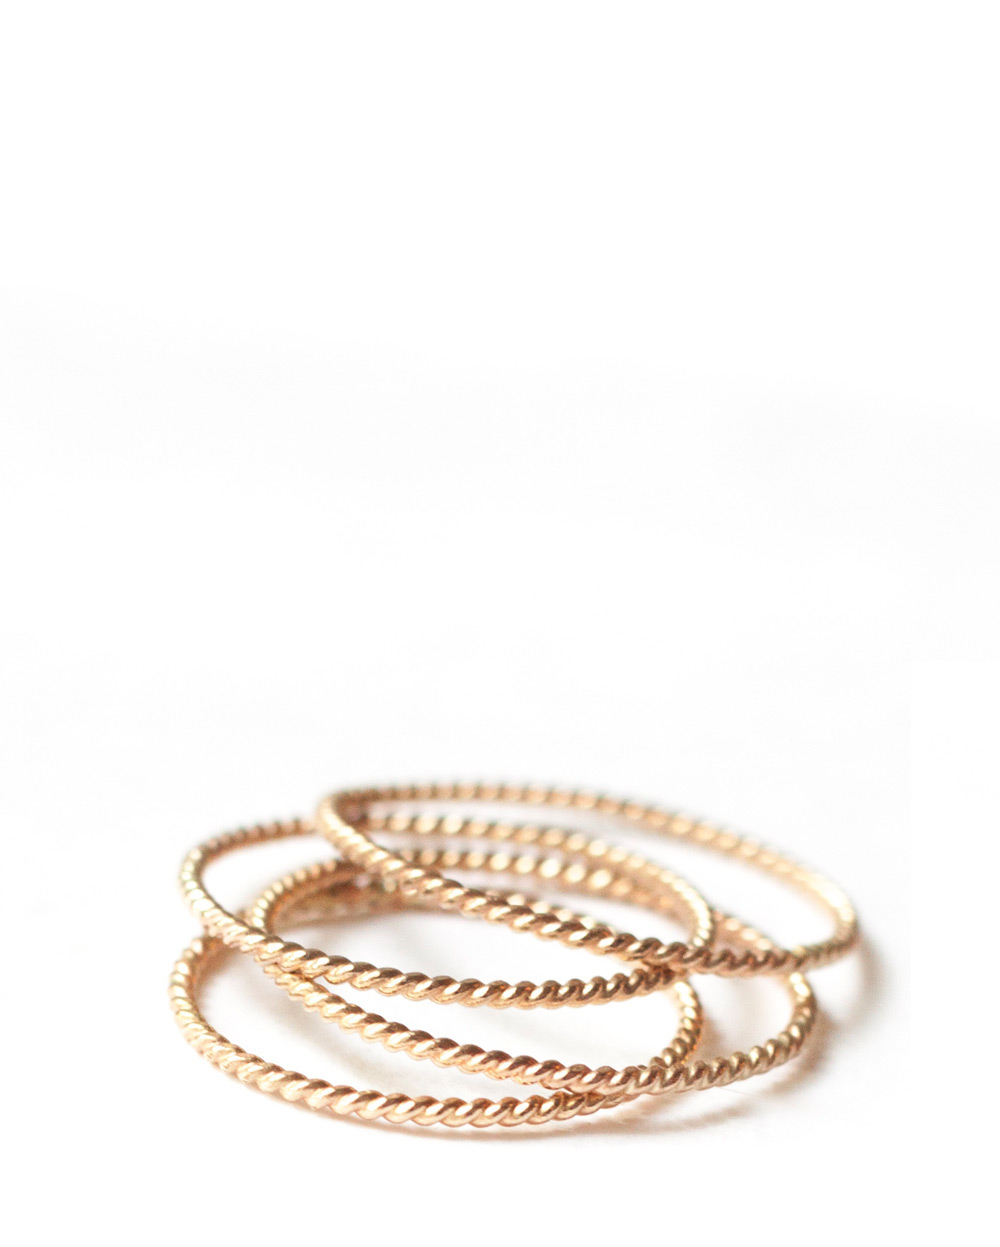 Braided Gold RIng – The Littlest Fry